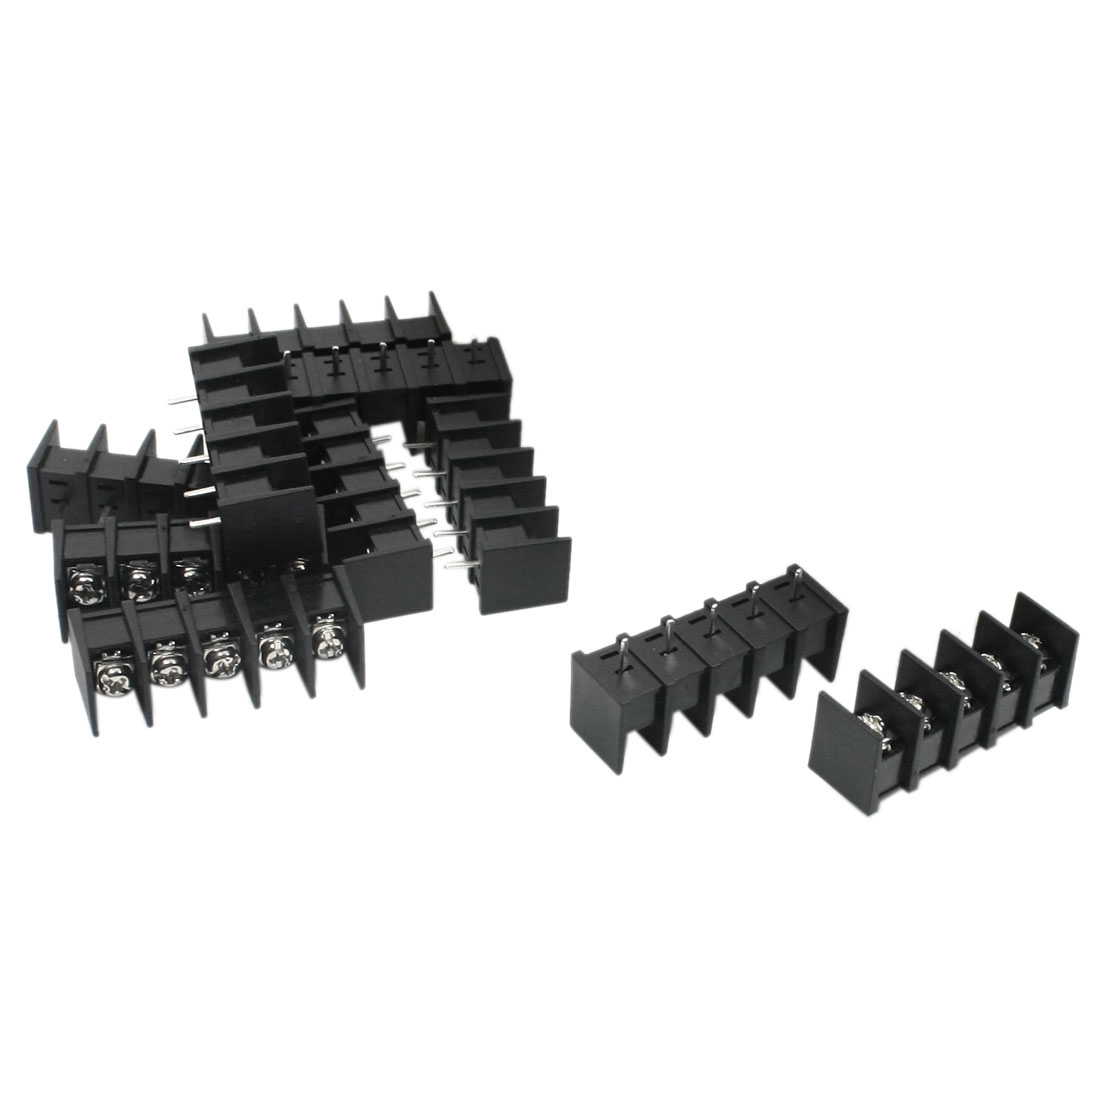 10pcs 300V 20A 5 Position Single Row Barrier Screw Terminal Block Strip